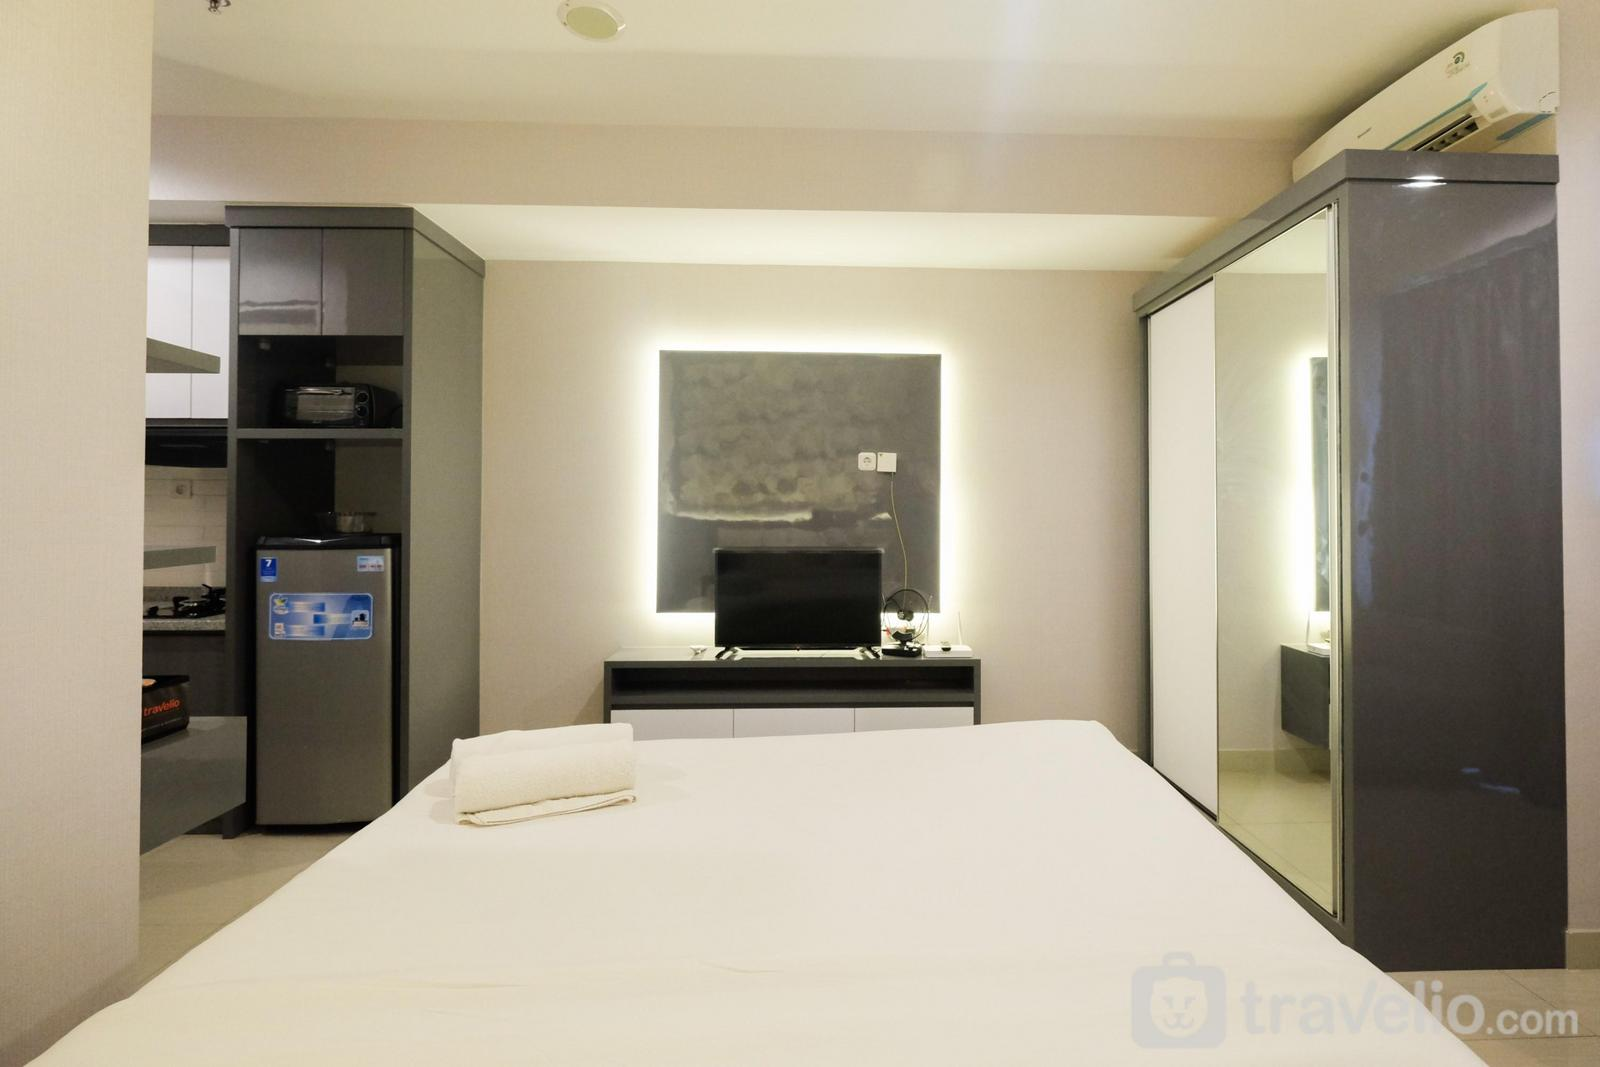 Grand Kamala Lagoon - Comfy Studio at Grand Kamala Lagoon Apartment By Travelio